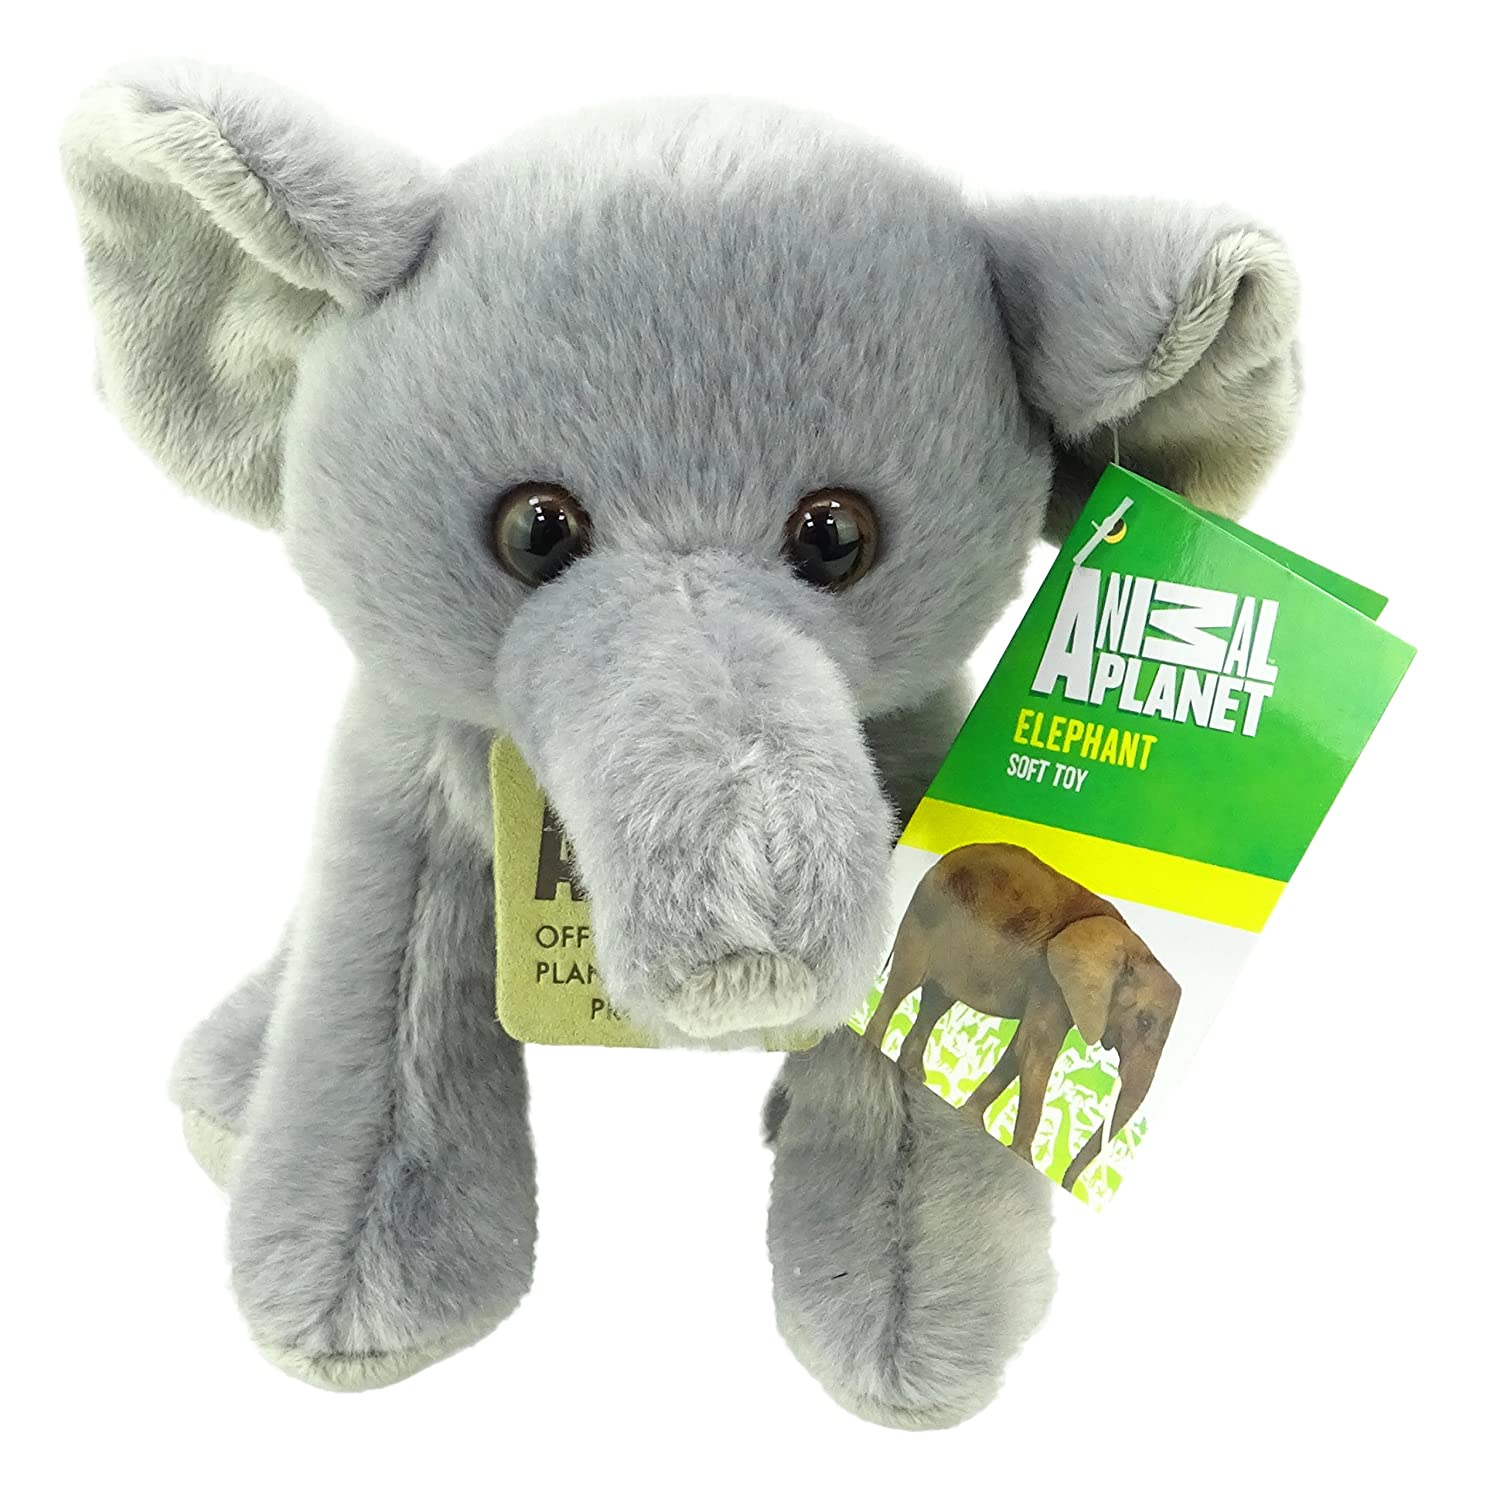 Animal Planet Jungle Cubs - Juguete suave de elefante de peluche de 15 cm: Amazon.es: Juguetes y juegos